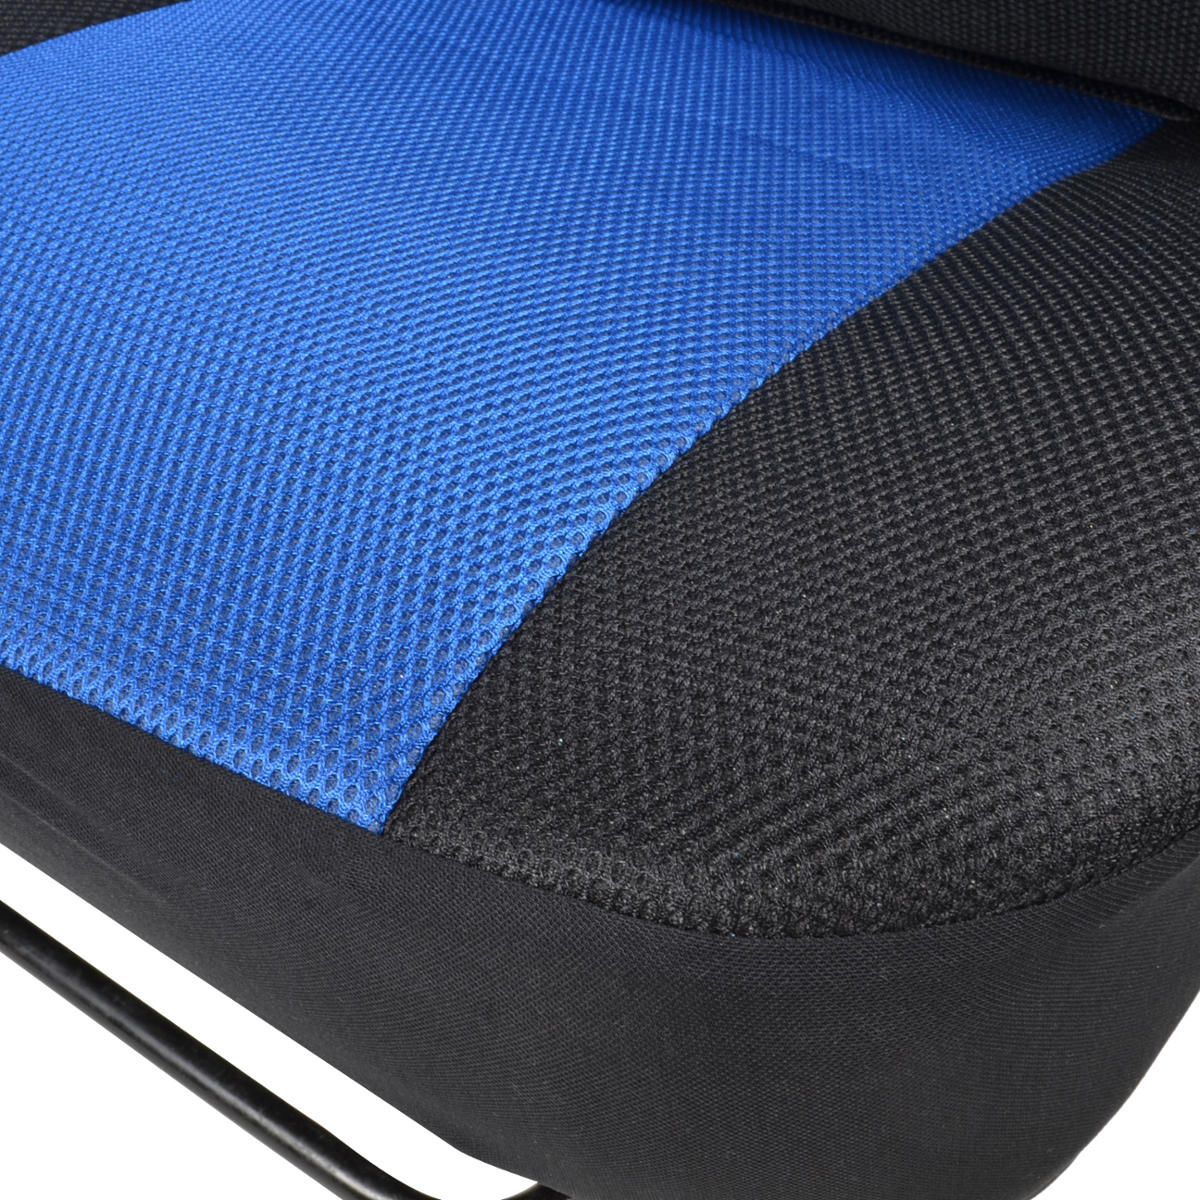 Seat Covers Black And Blue Mesh Cloth Polyester 2 Color